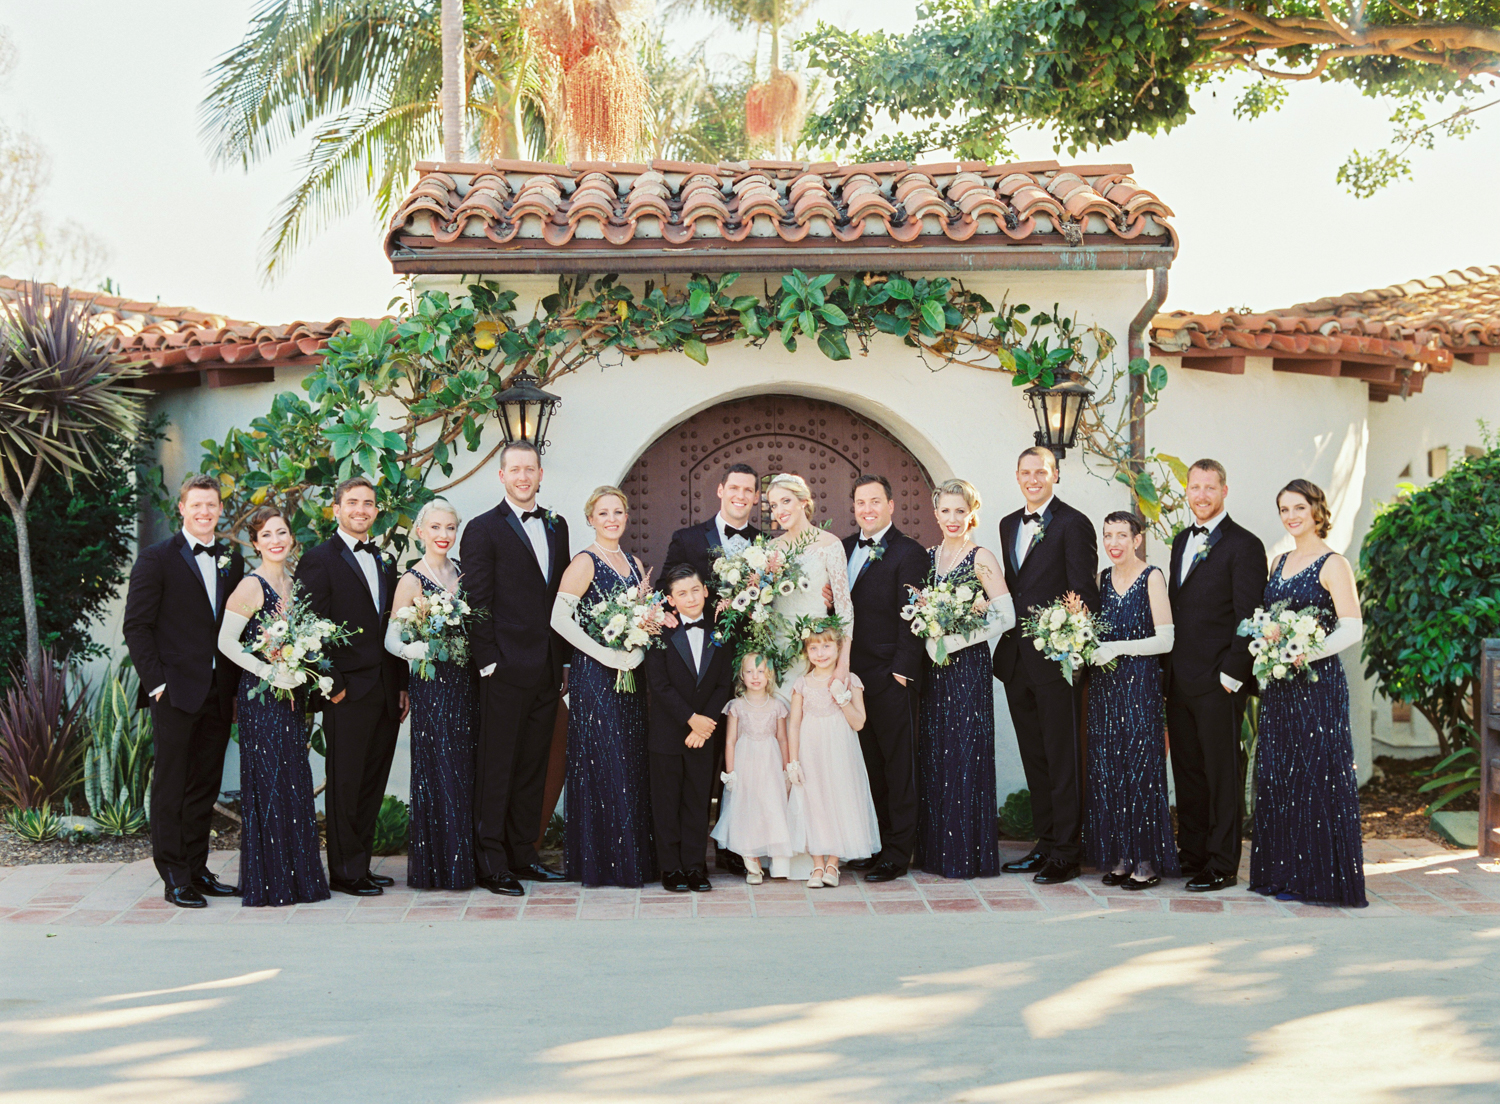 Casa Romantica wedding photographer, san clemente wedding photographer, san clemente wedding photos, orange county wedding, classic wedding